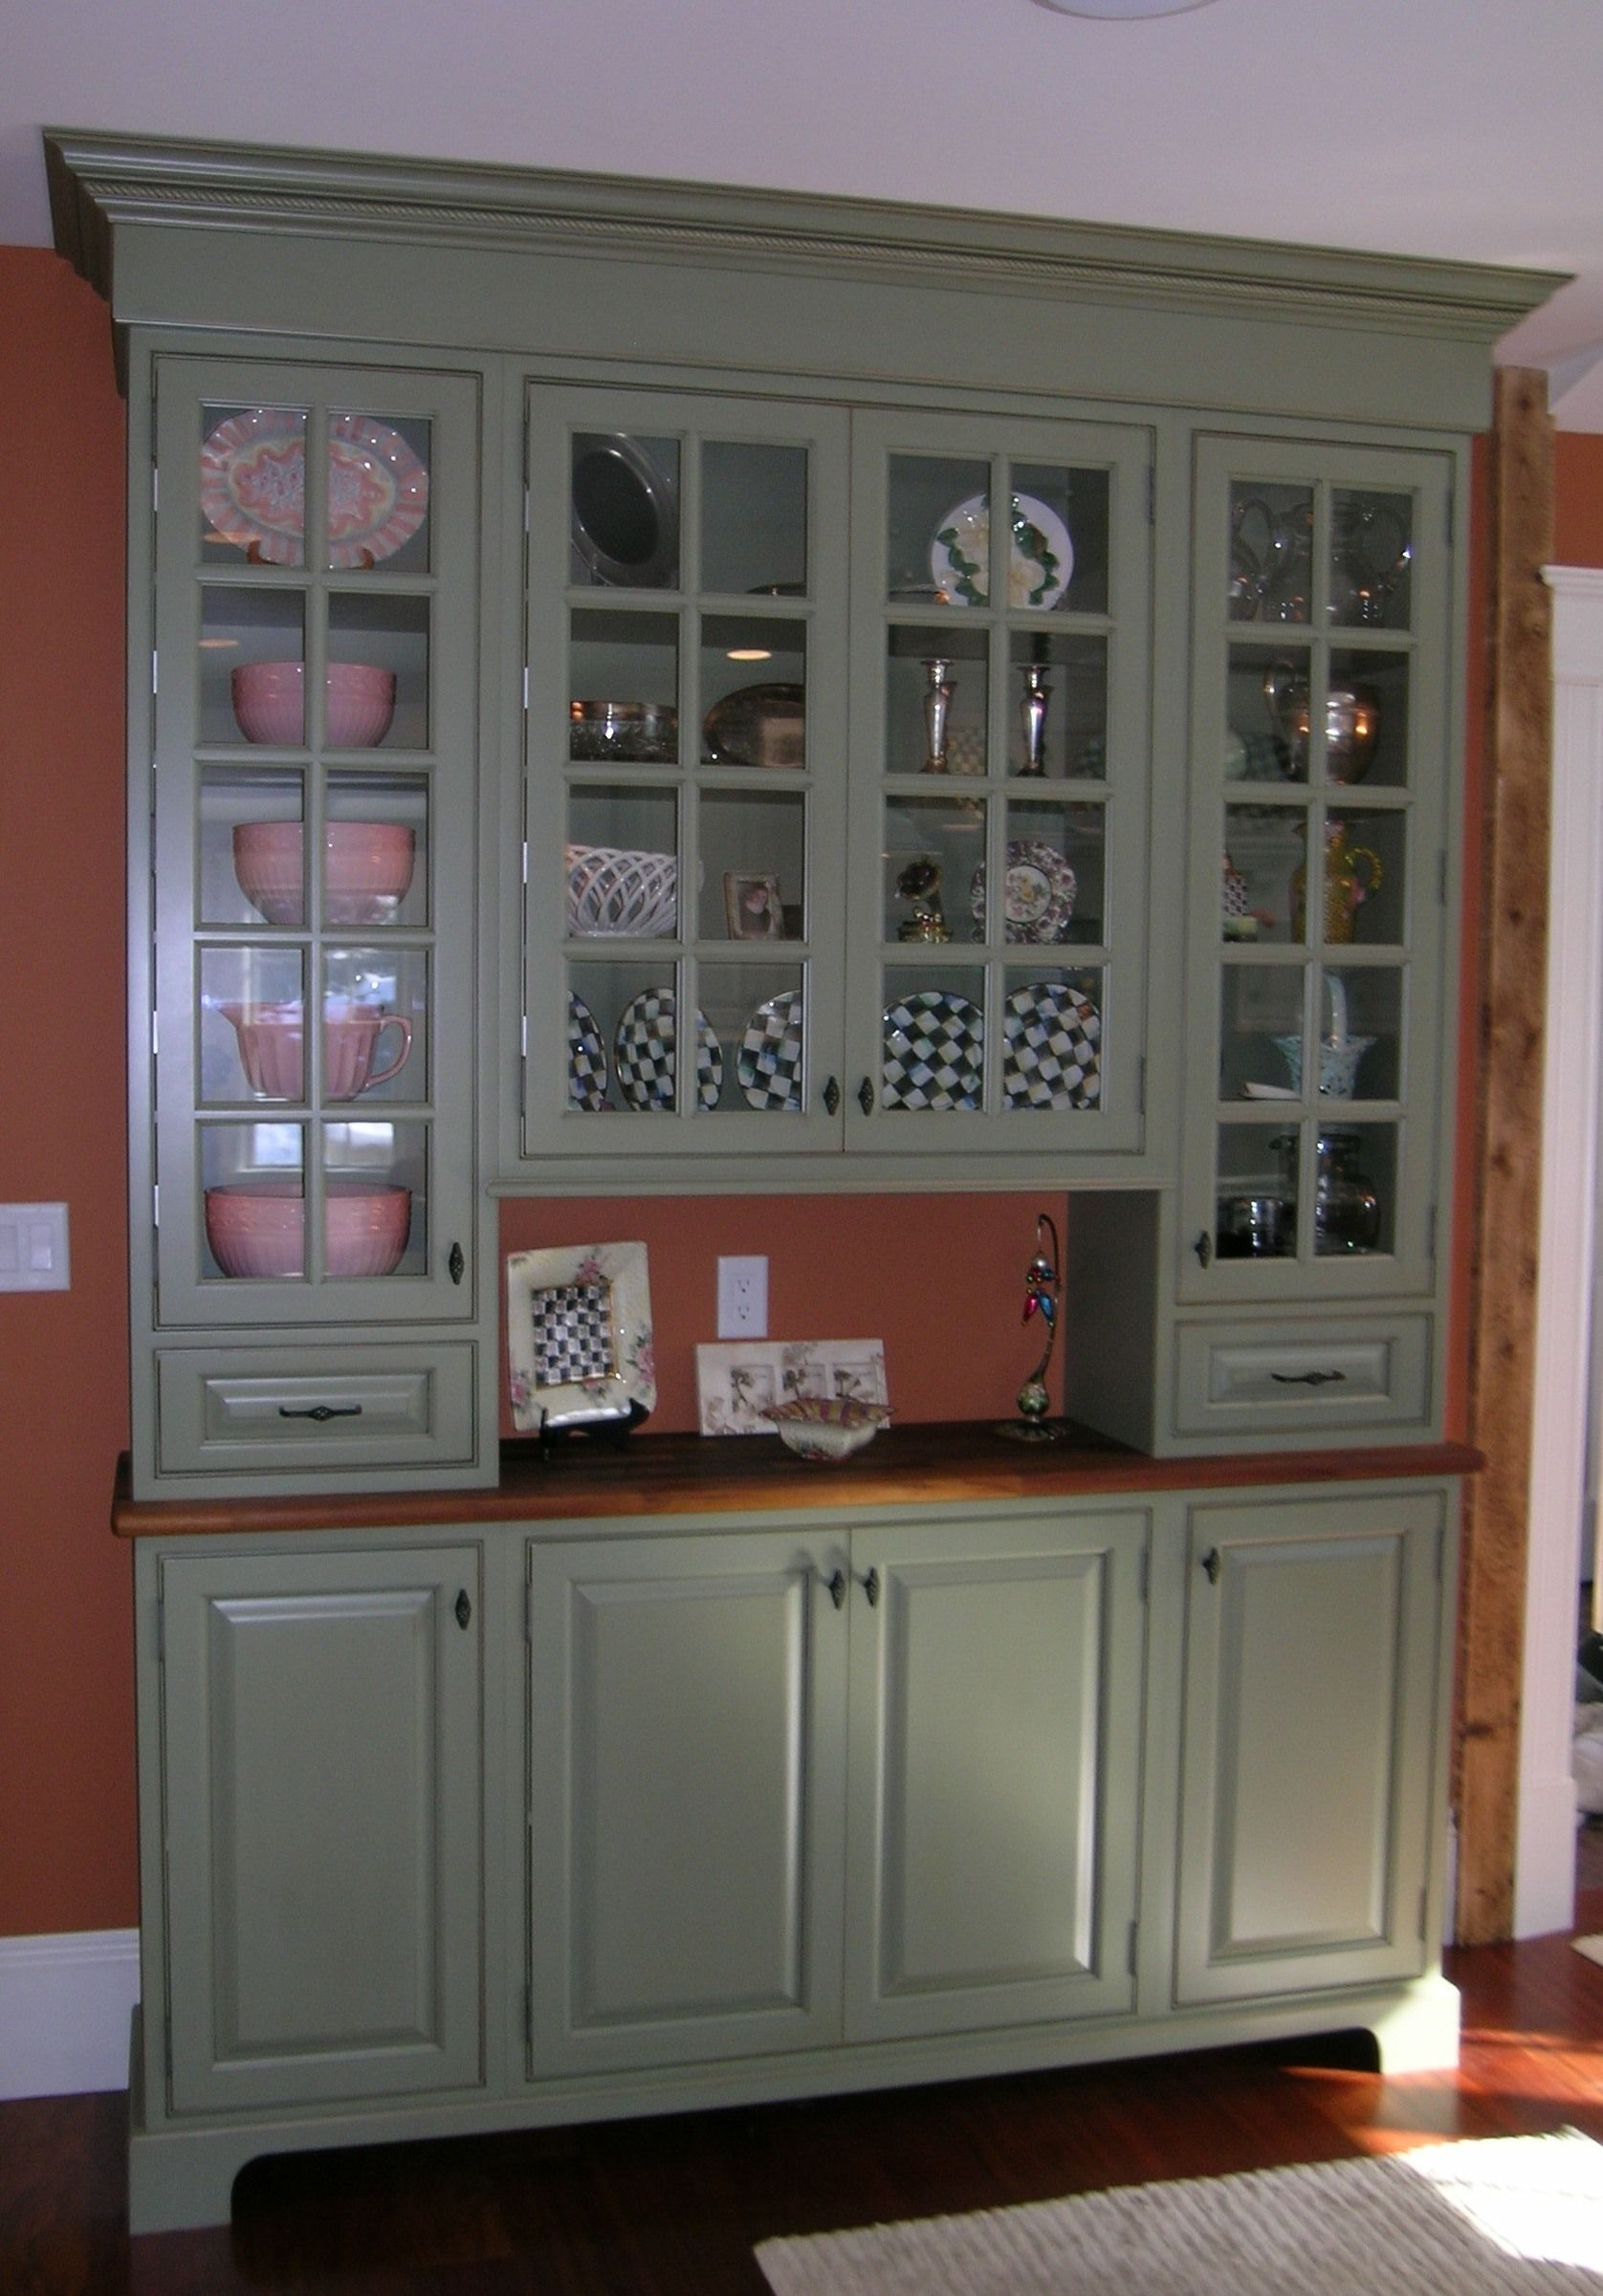 Going to be painting the kitchen cabinets this week Sage green it